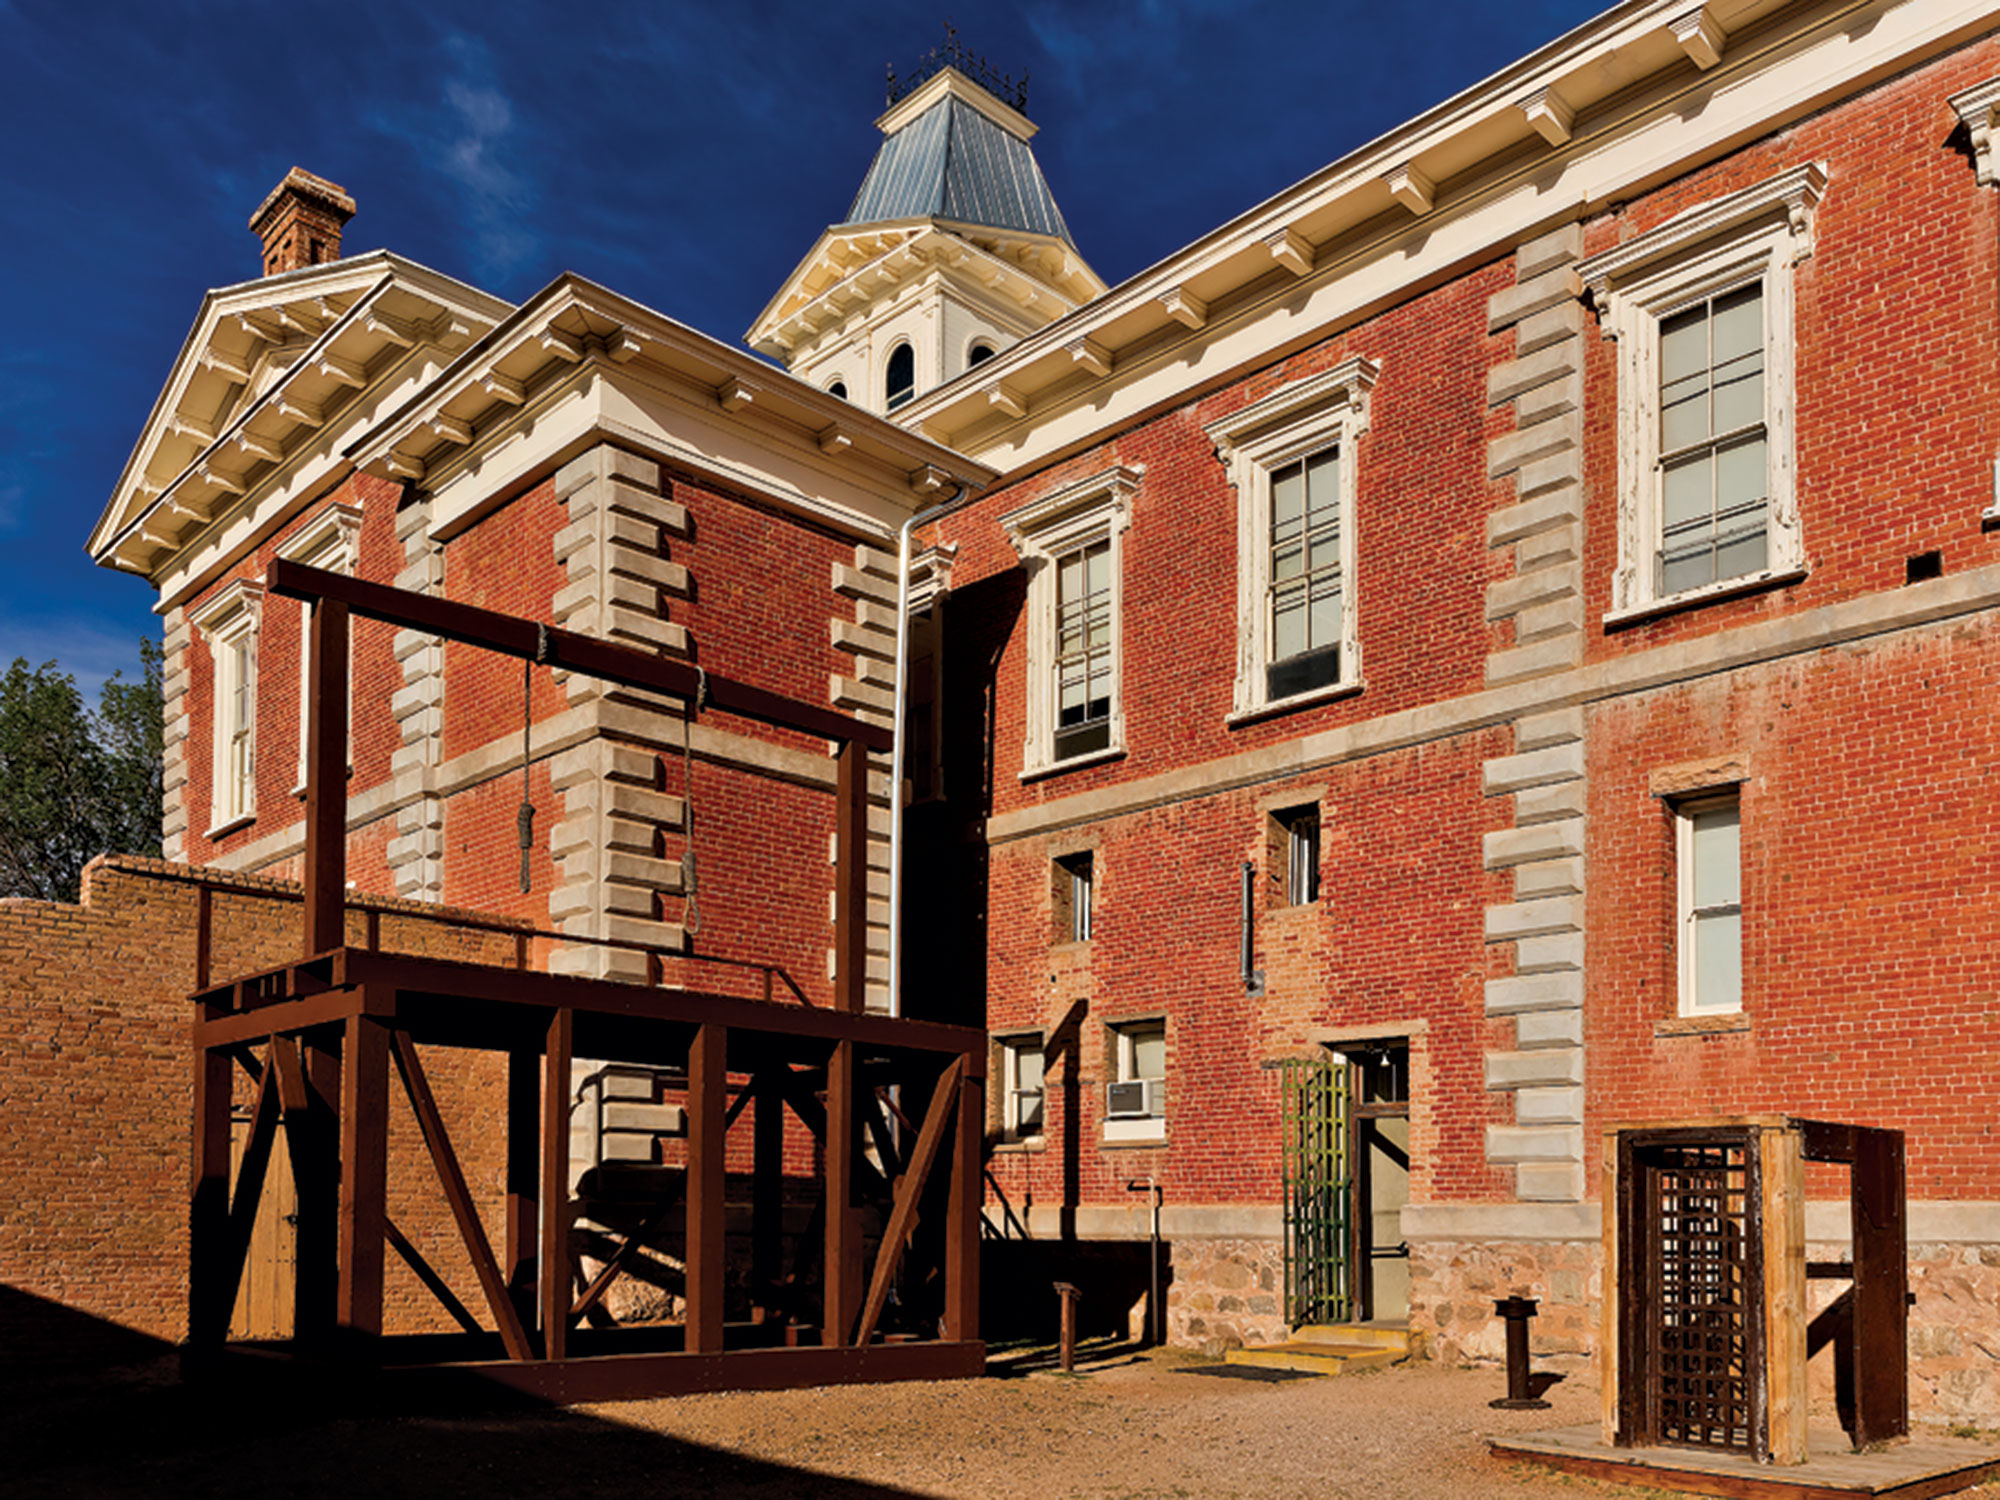 Tombstone Courthouse State Historic Park; Photo Courtesy Arizona State Parks & Trails